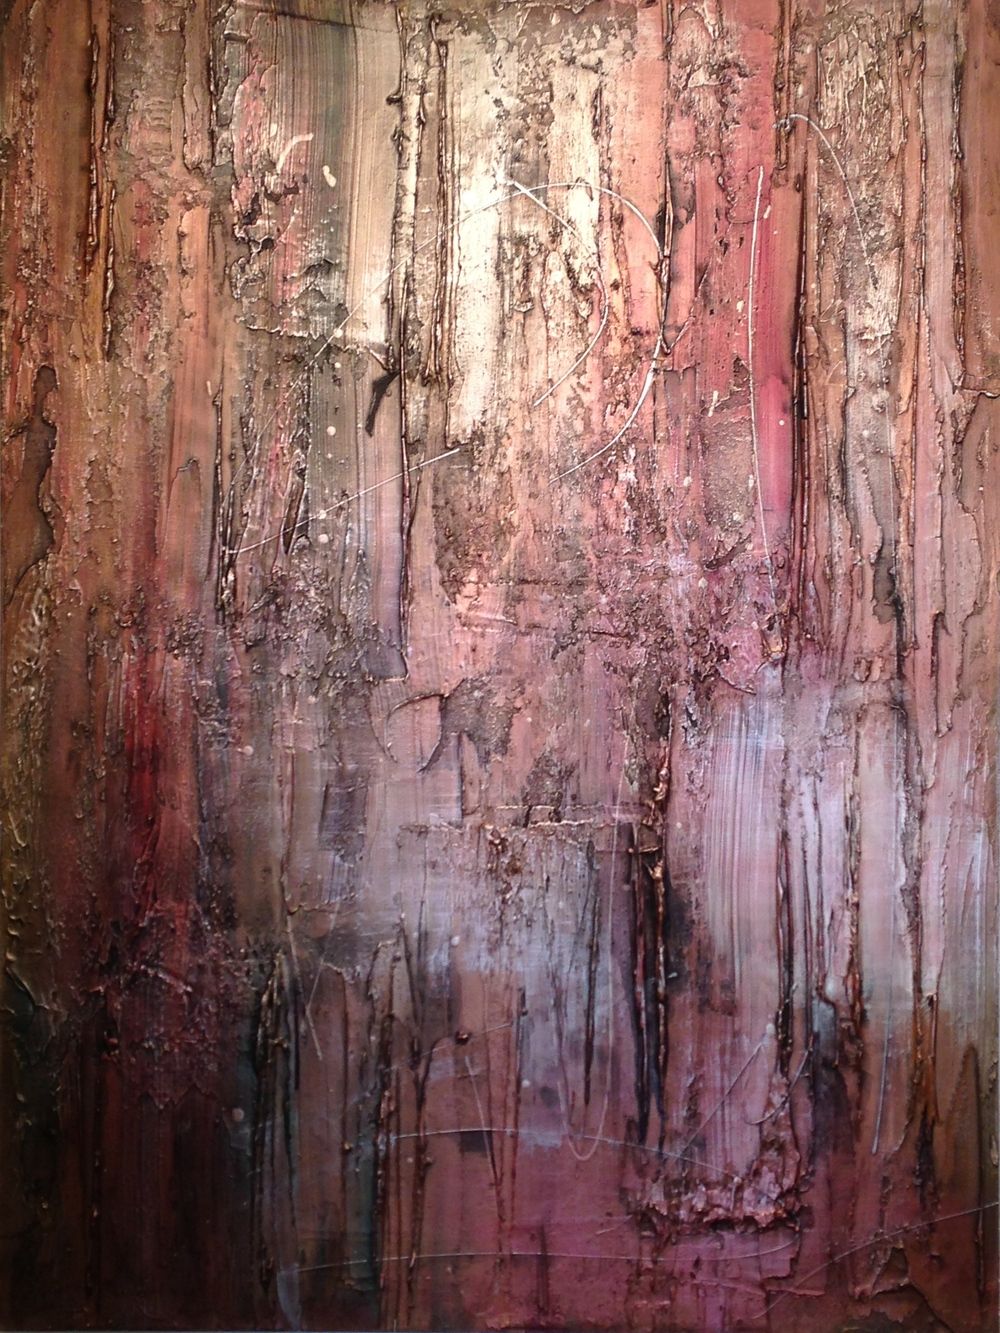 marquis  48 x 36 x 1.5 inches  mixed media on canvas  $4200 USD